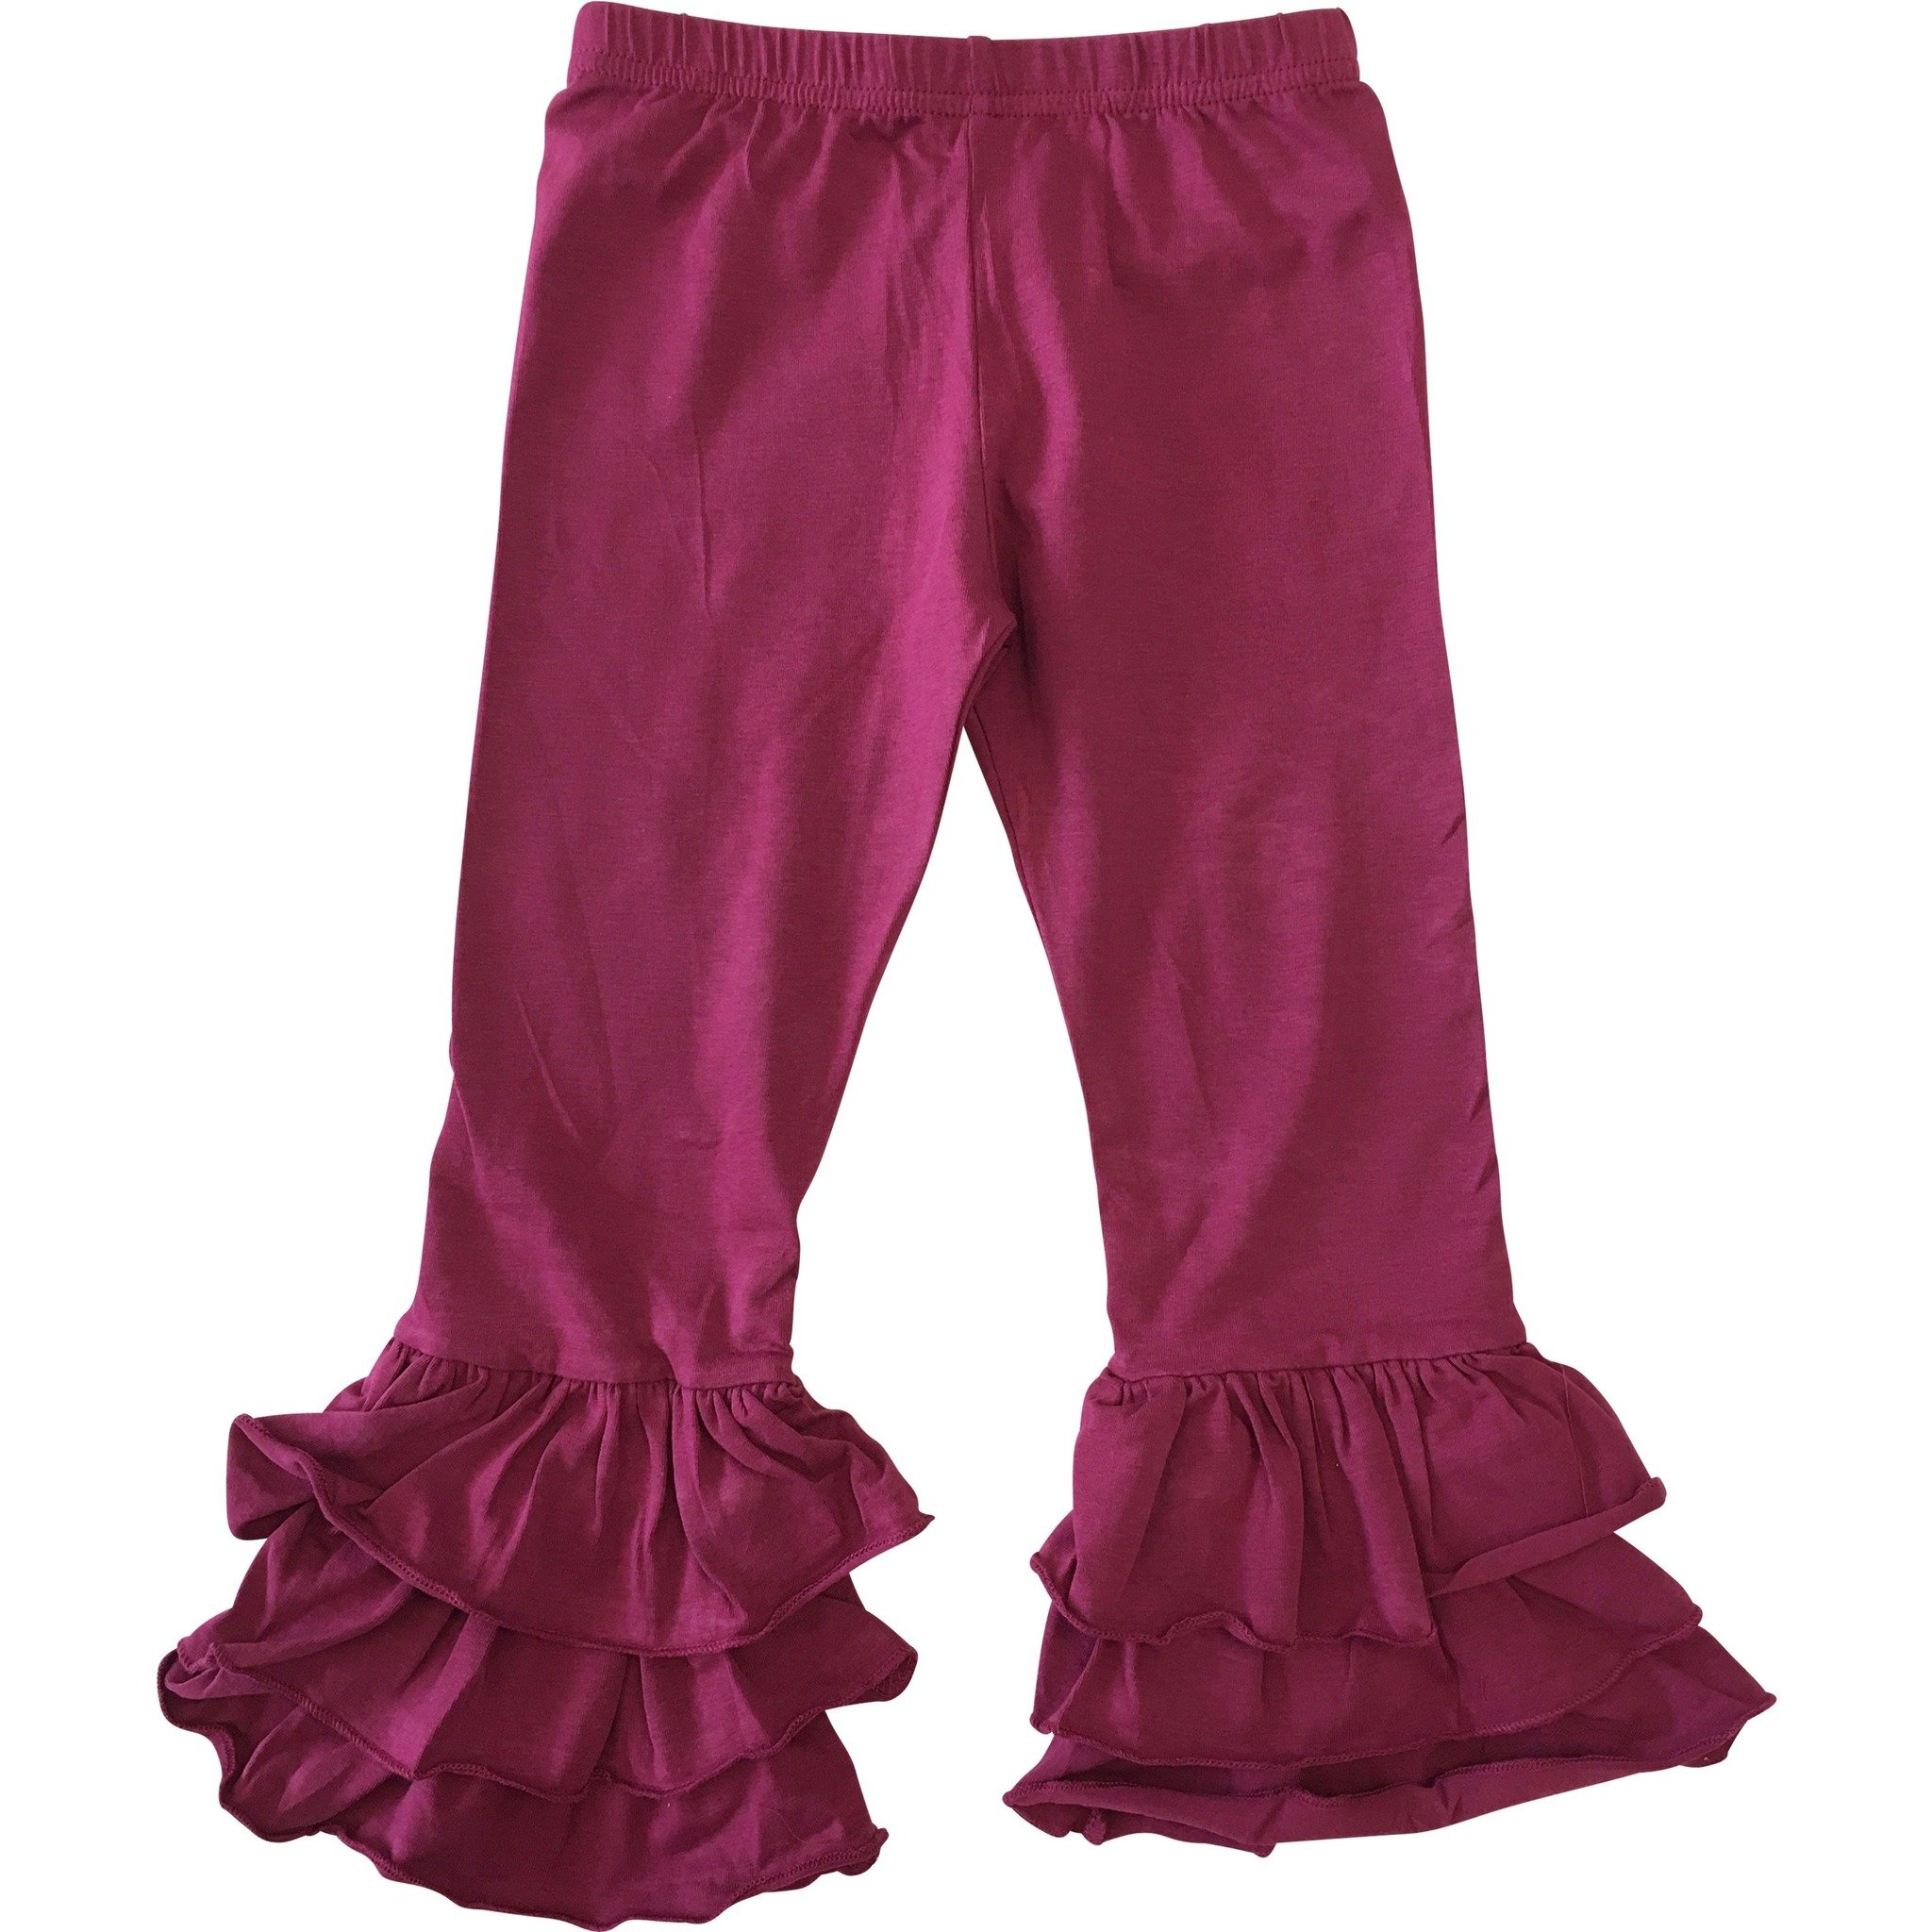 MJ Matches (Sept.) - Girls Triple Ruffle Pants PRE-ORDER